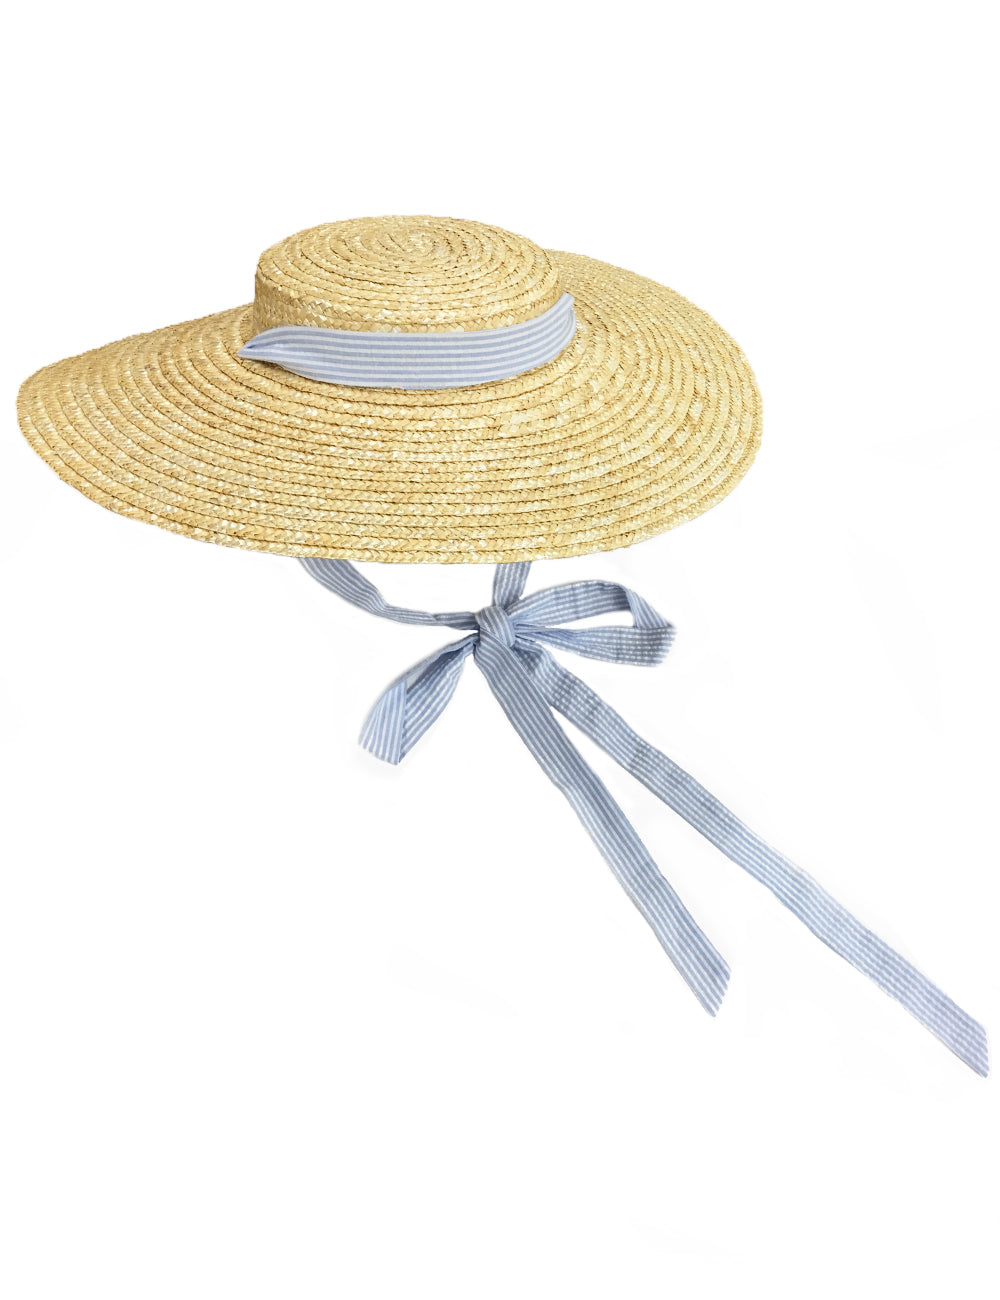 Blue Seersucker Vintage Style Woven Large Brim Straw Hat